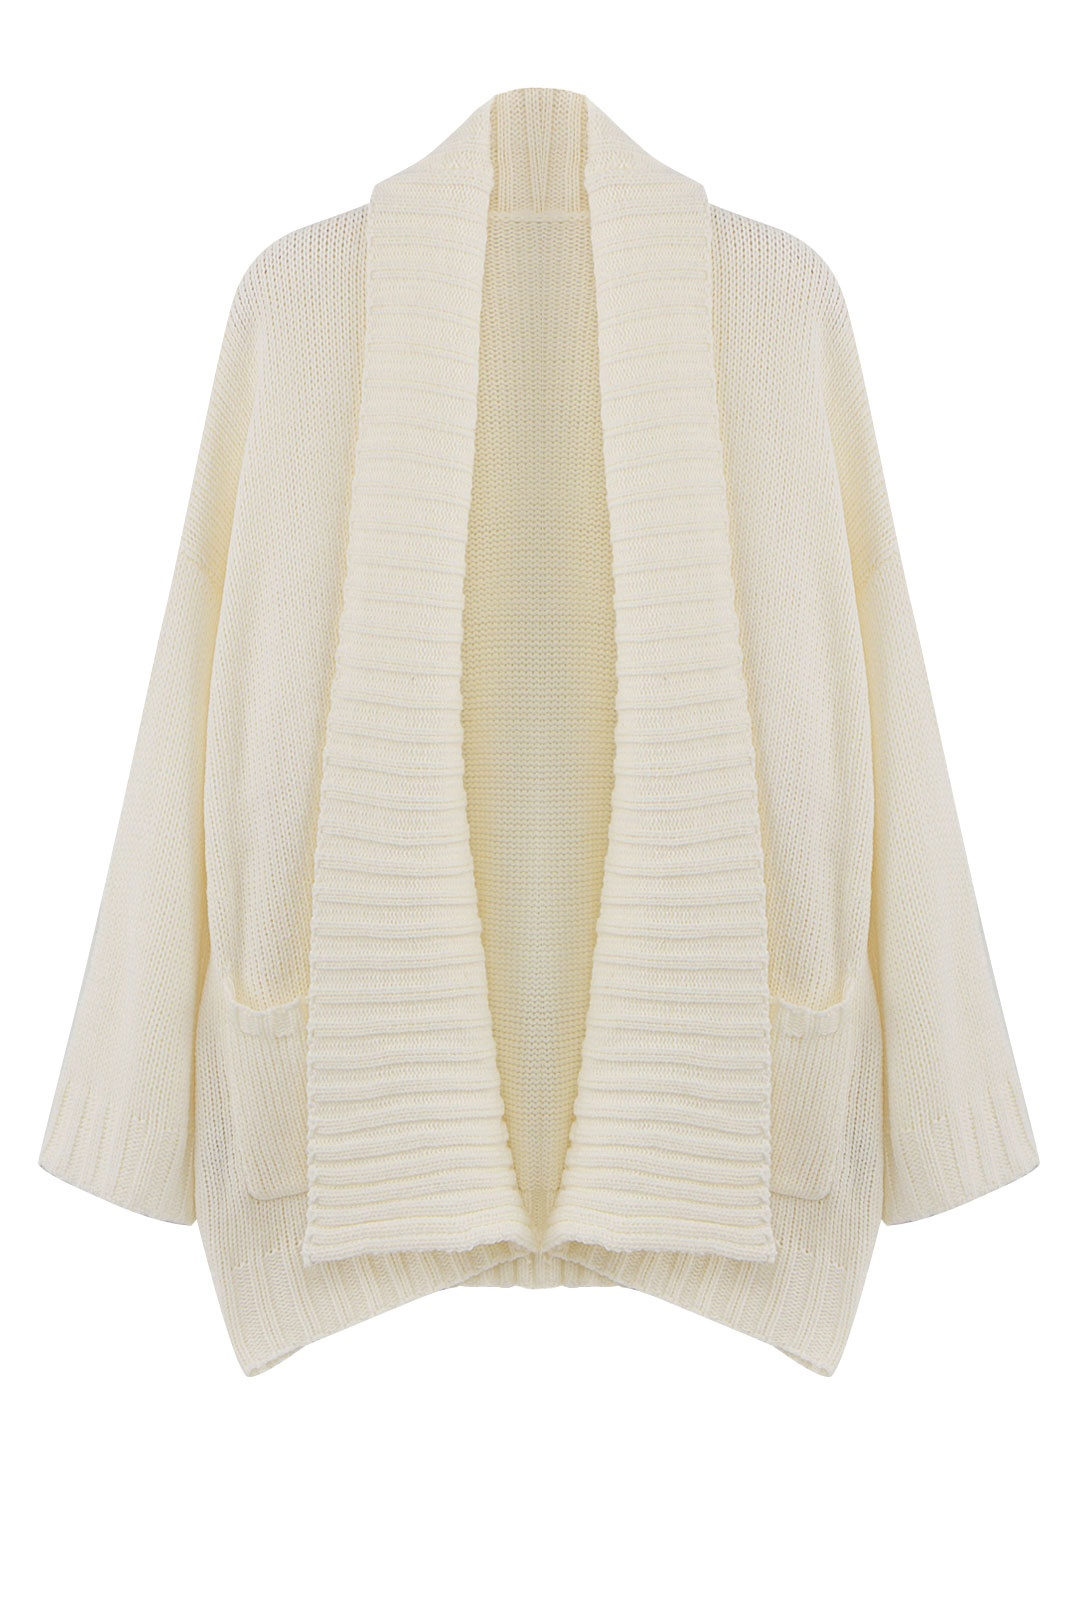 White Wide Lapel Loose Knitted Cardigan